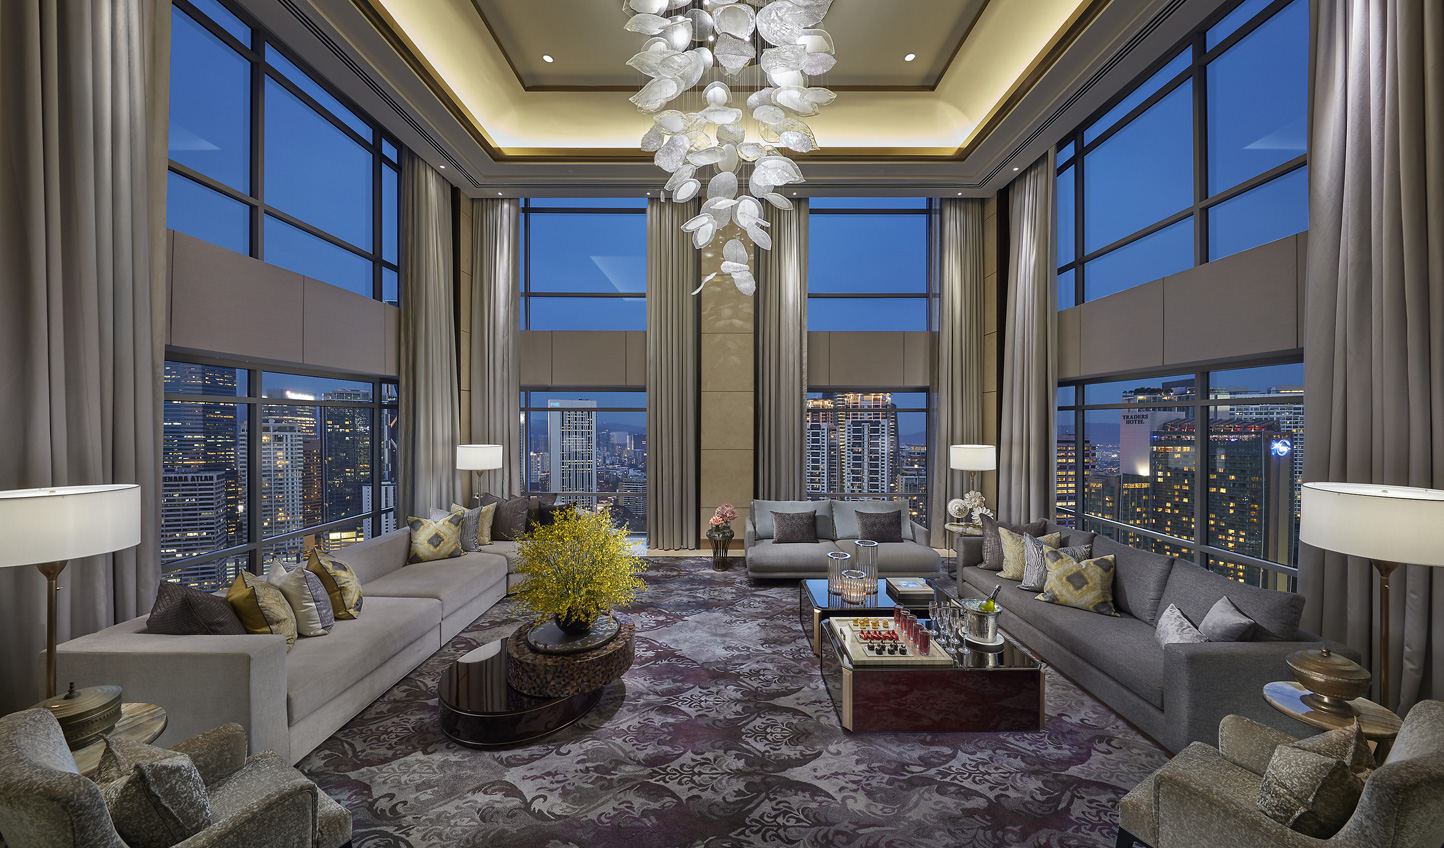 Luxury in the Presidential Suite